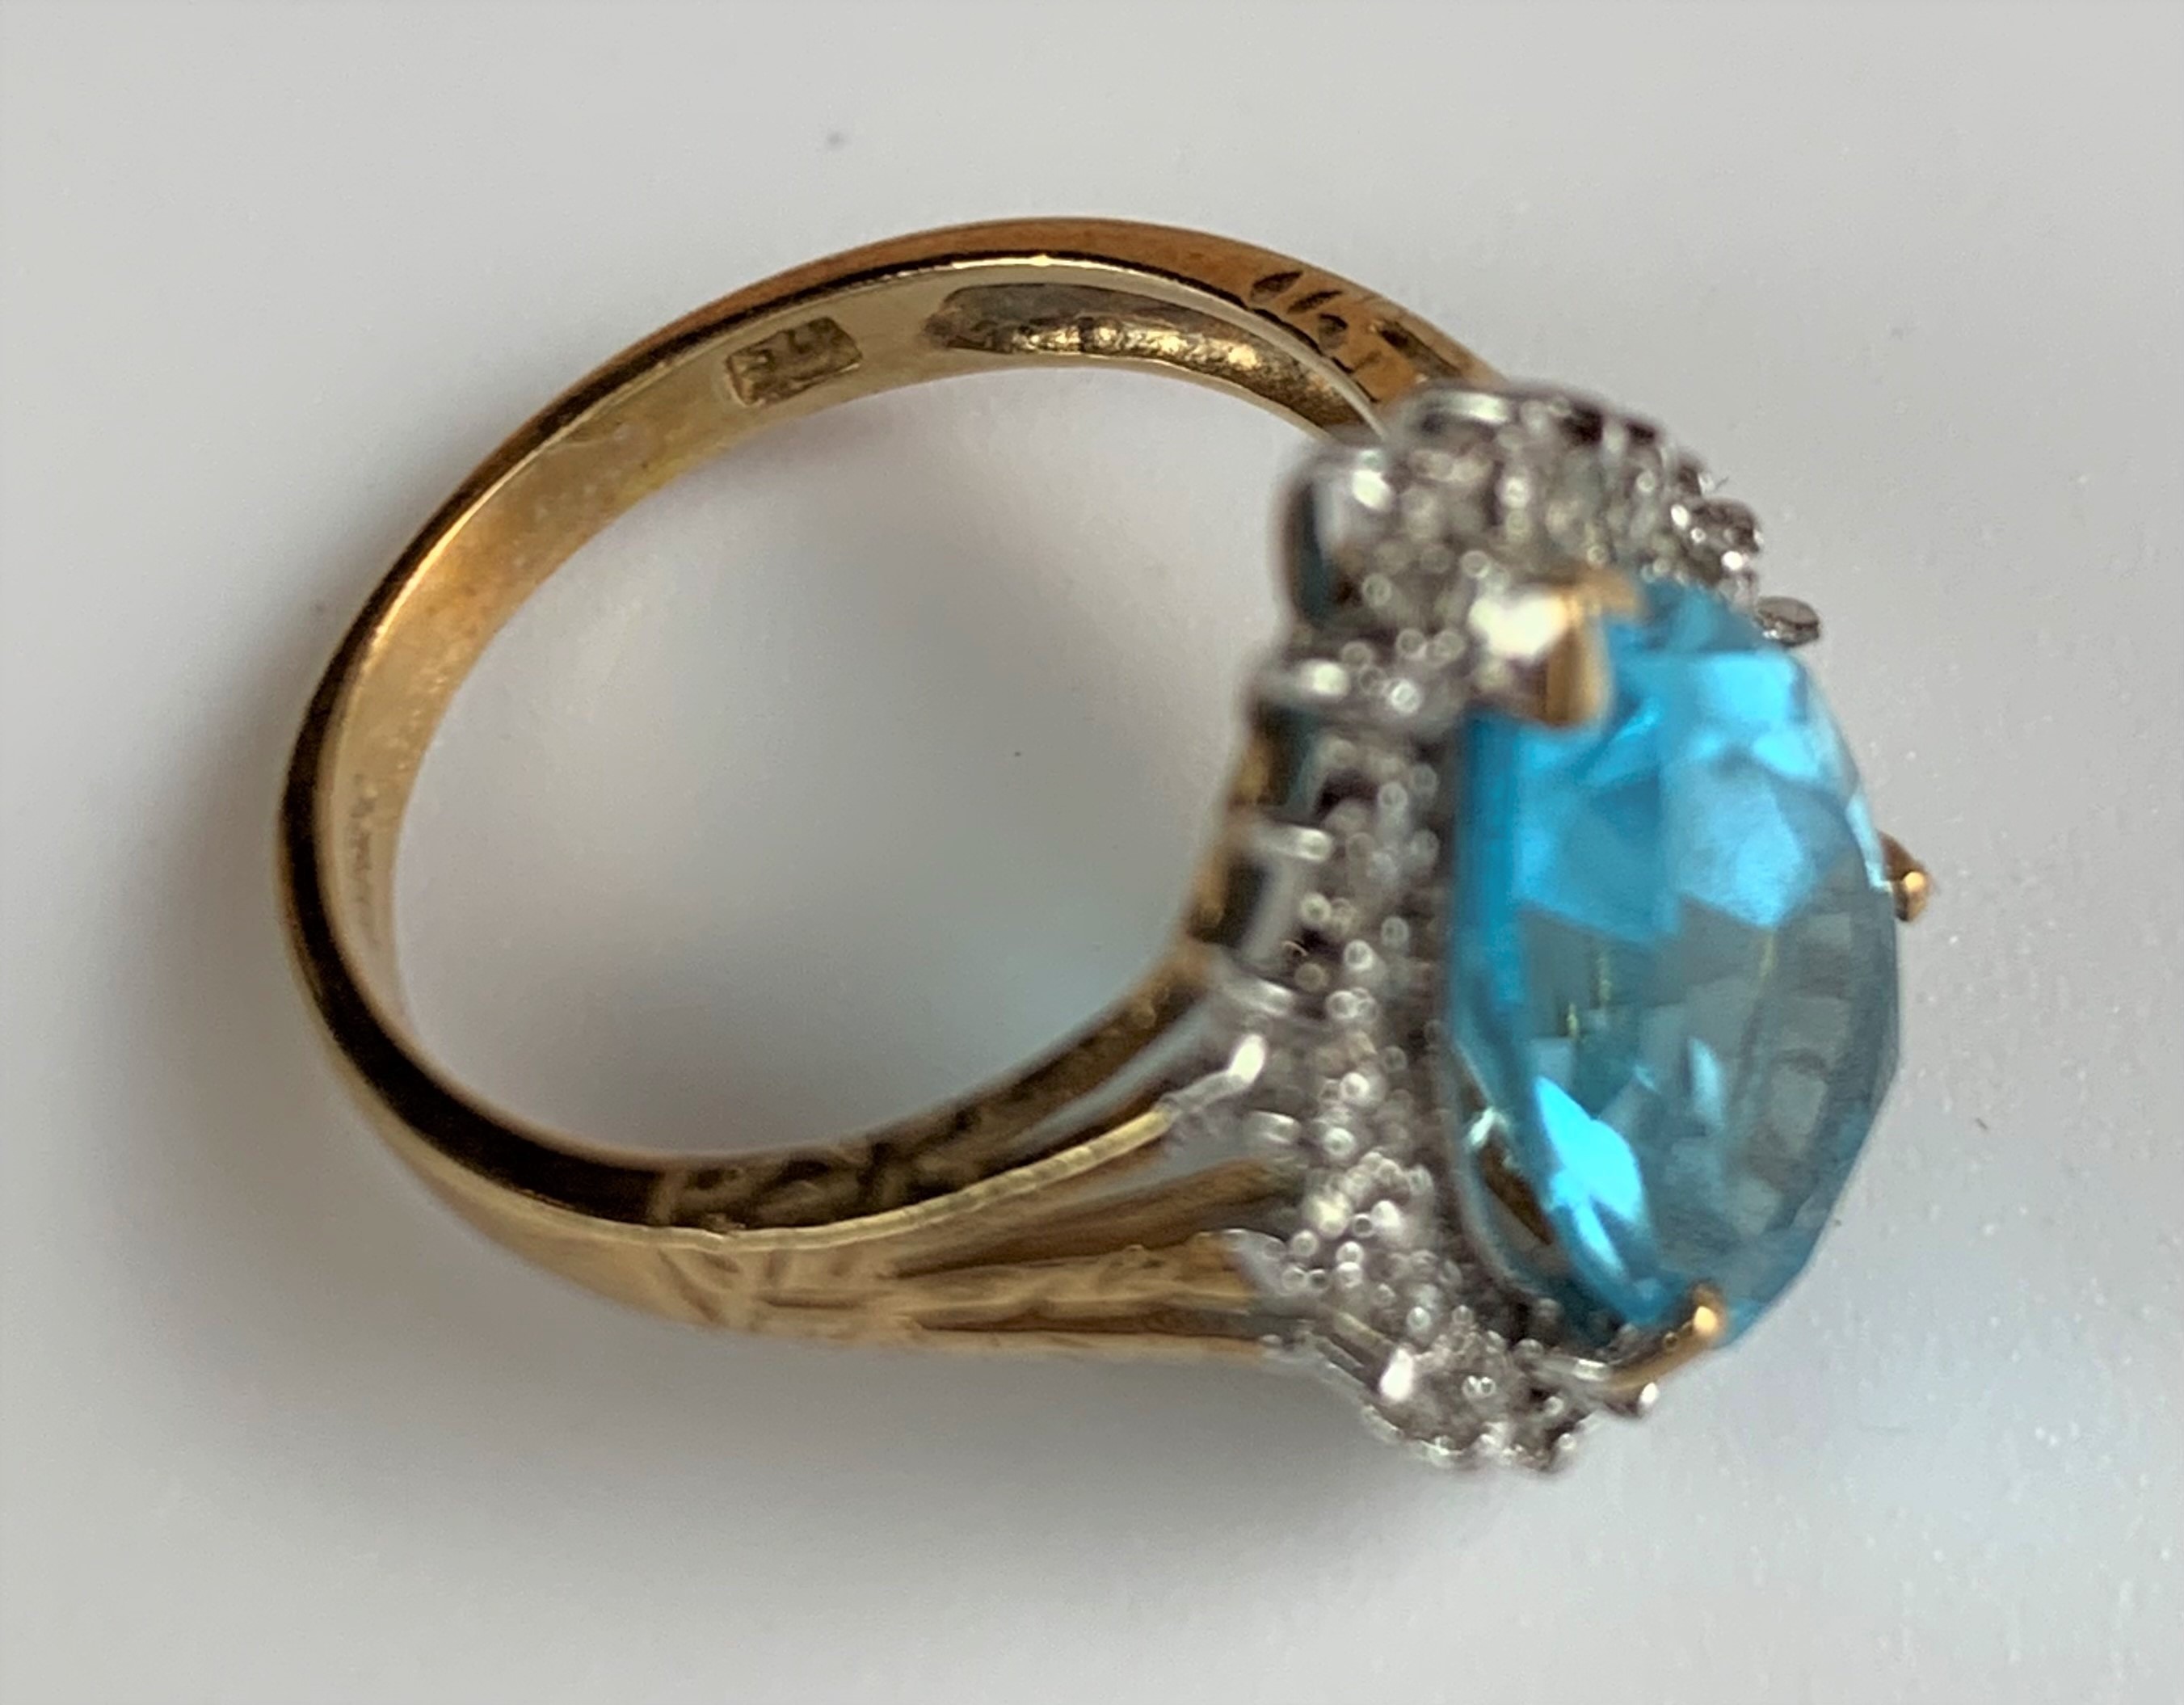 9k gold ring with blue heart shaped stone, size L, w: 3.5 gms - Image 6 of 6